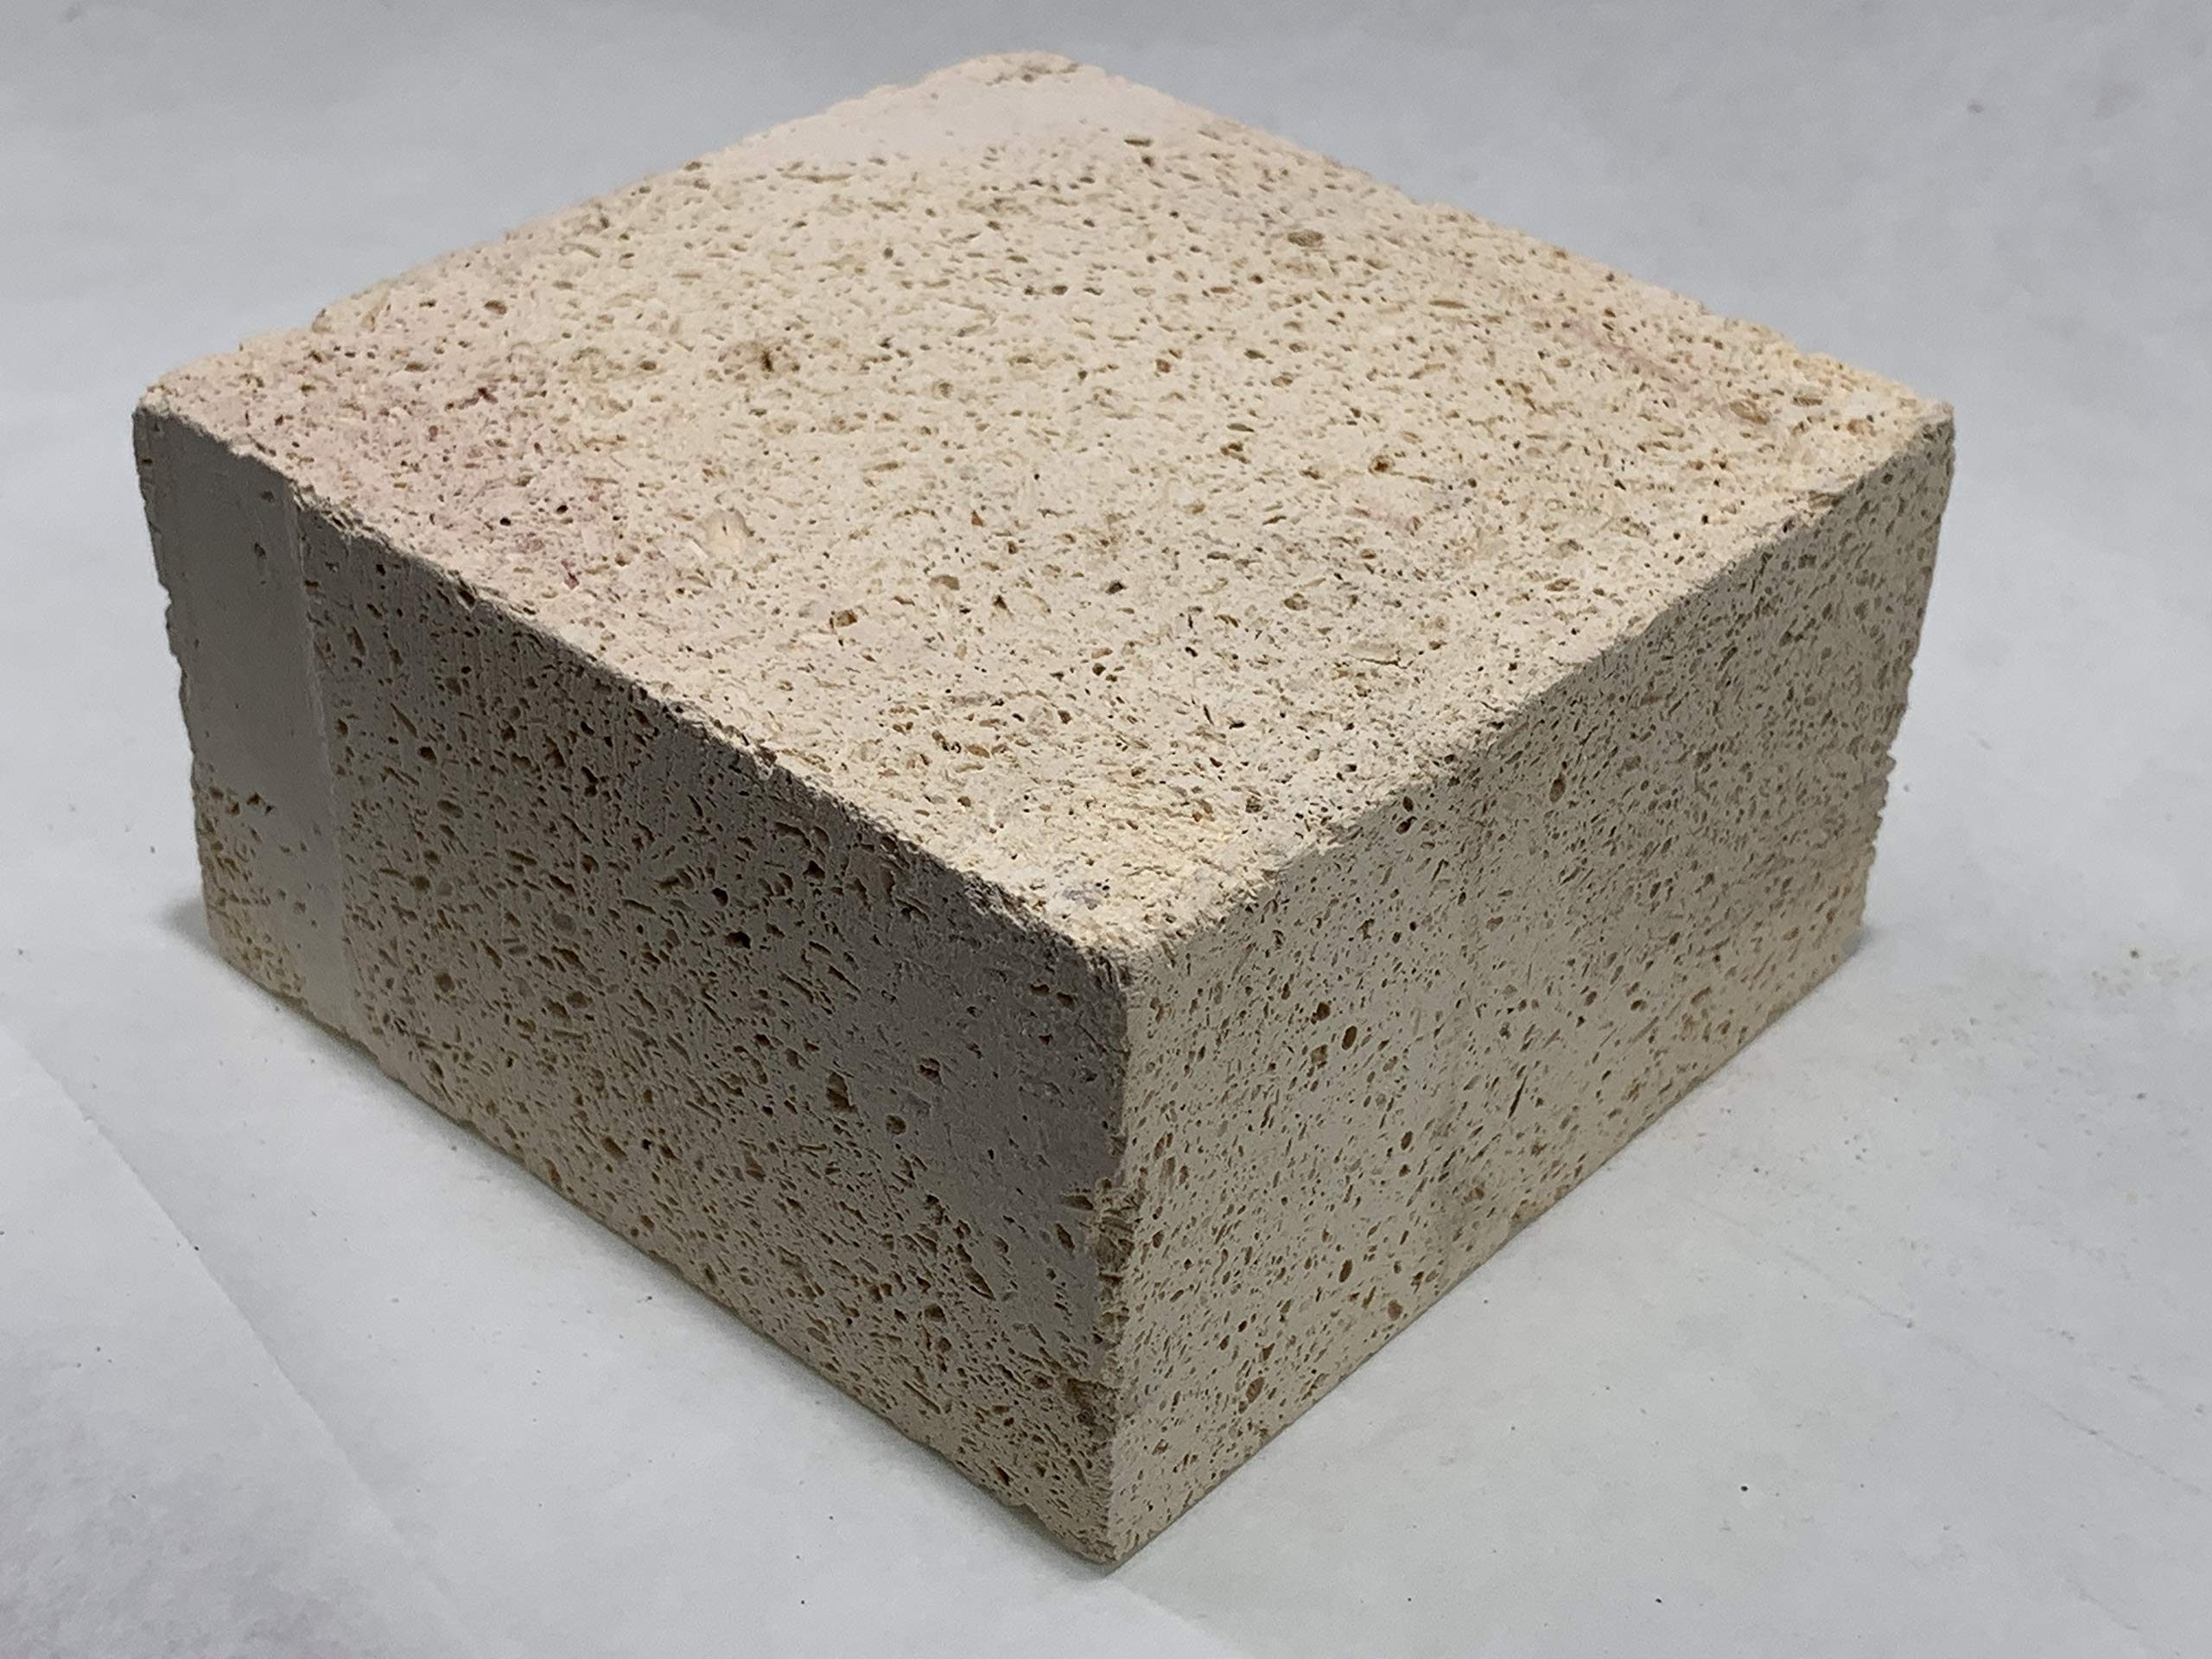 AA Plus Shop Insulated Fire Brick, White/Beige,Soldering, Forging, Fire Stove, Furnace, Small or Large (4.75x4.5x2.5 (Small) 12PK) by AA Plus Shop